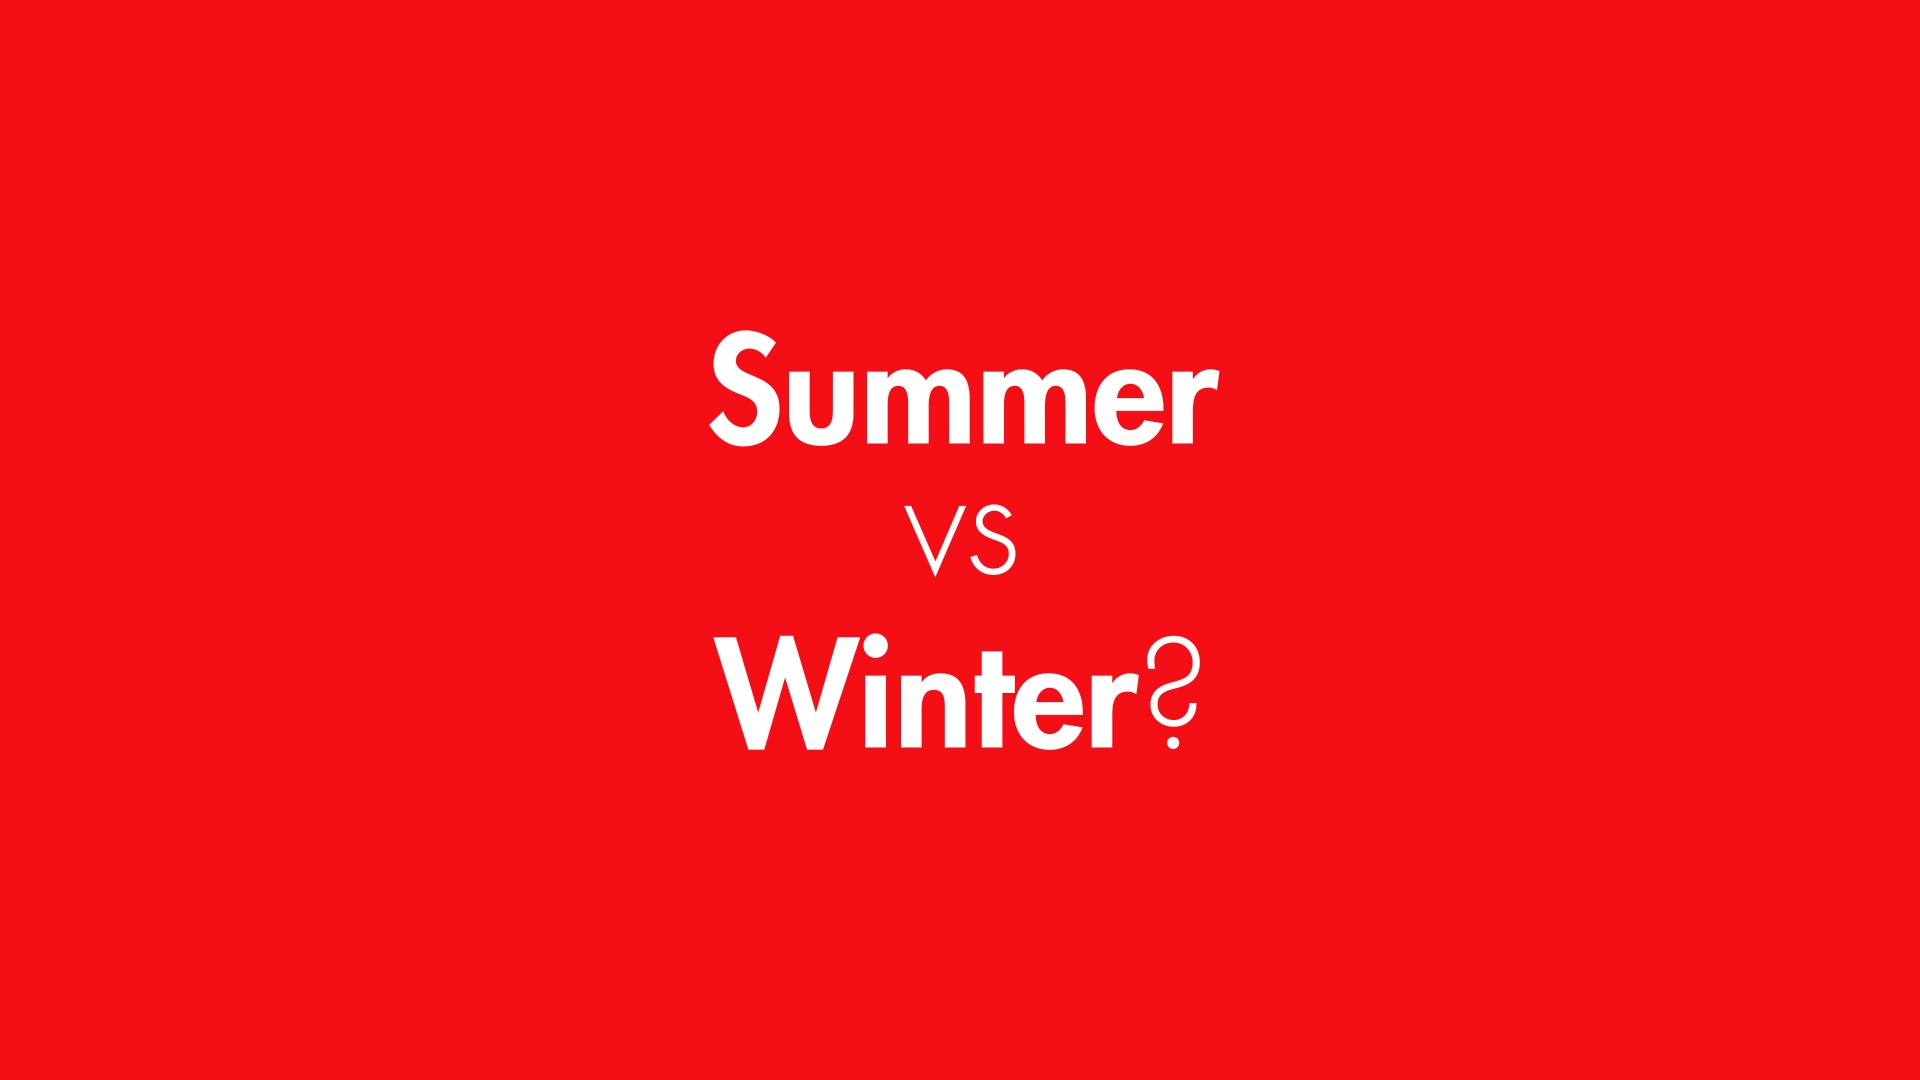 Summer vs Winter to shoot a video